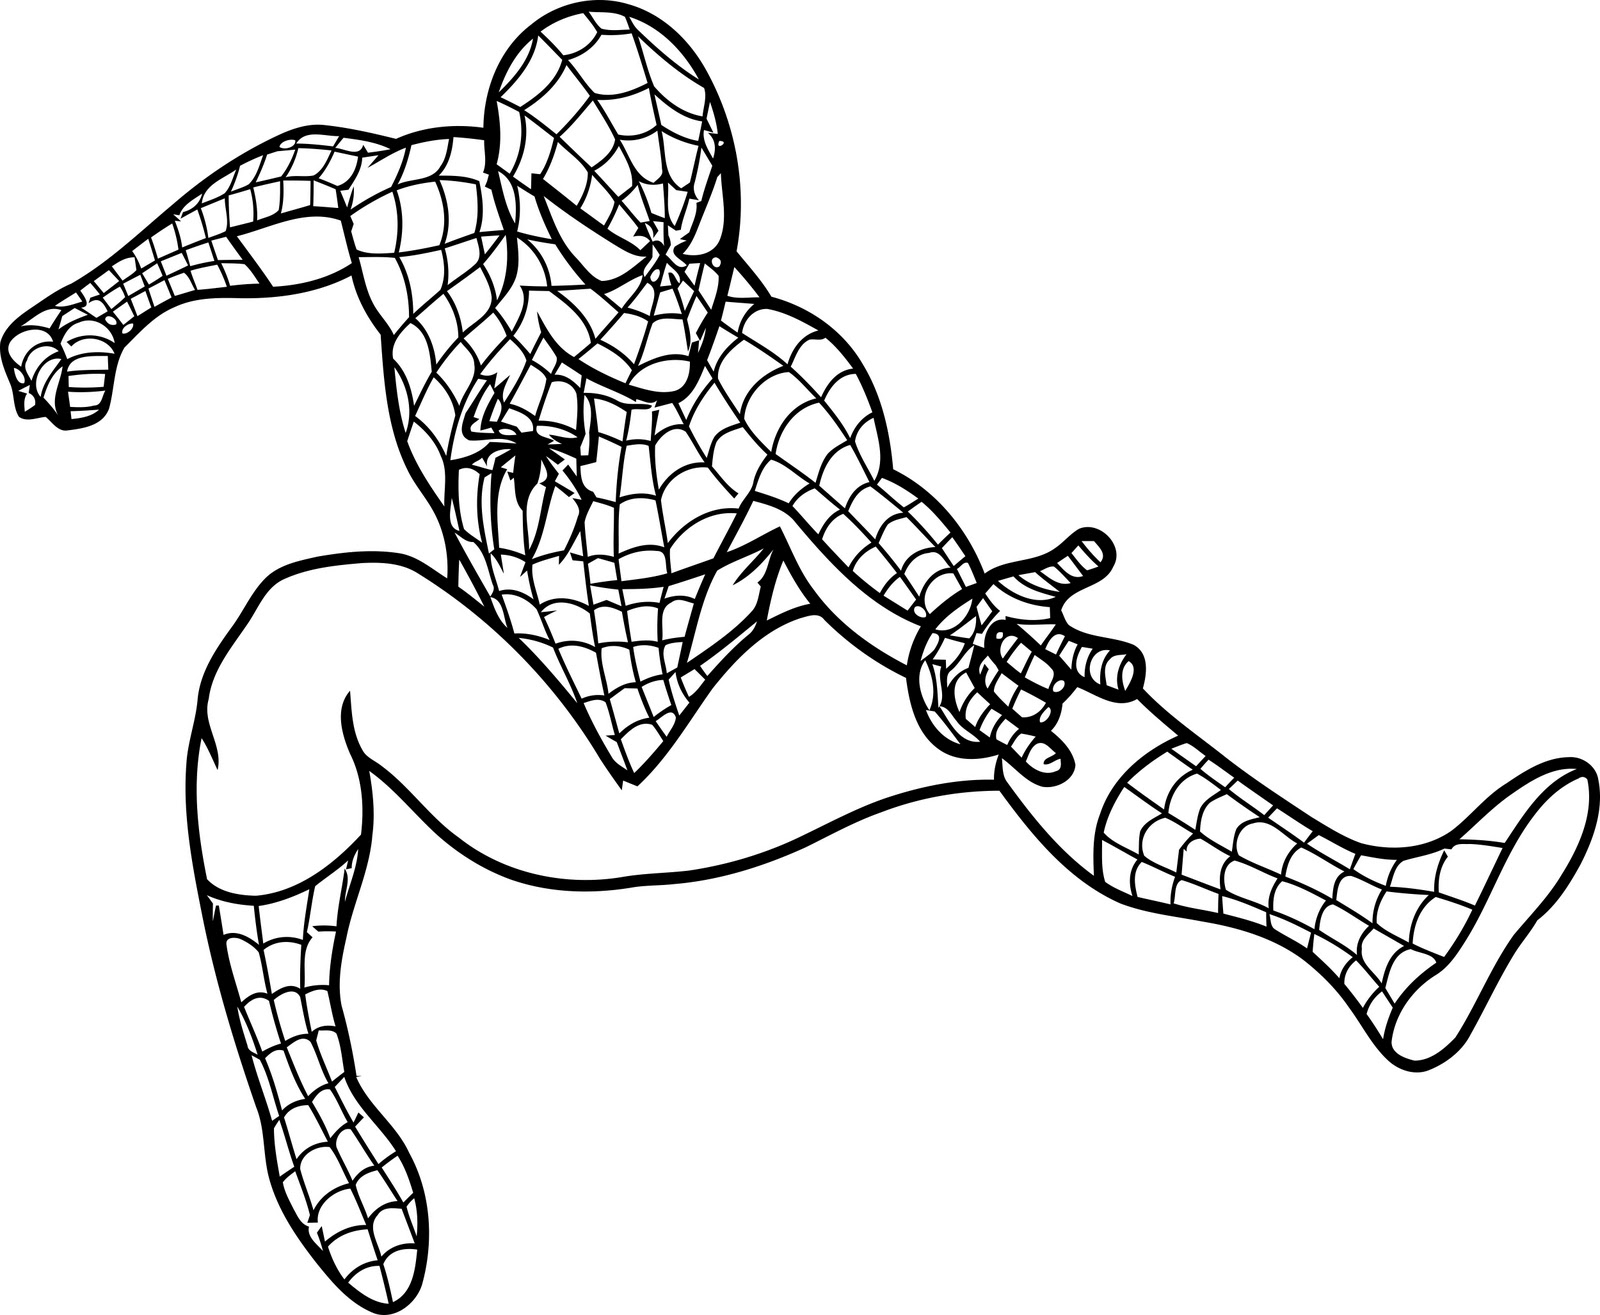 1600x1315 Coloring Pages For Kids Abcdefghijklmnopqrstuvwxyz